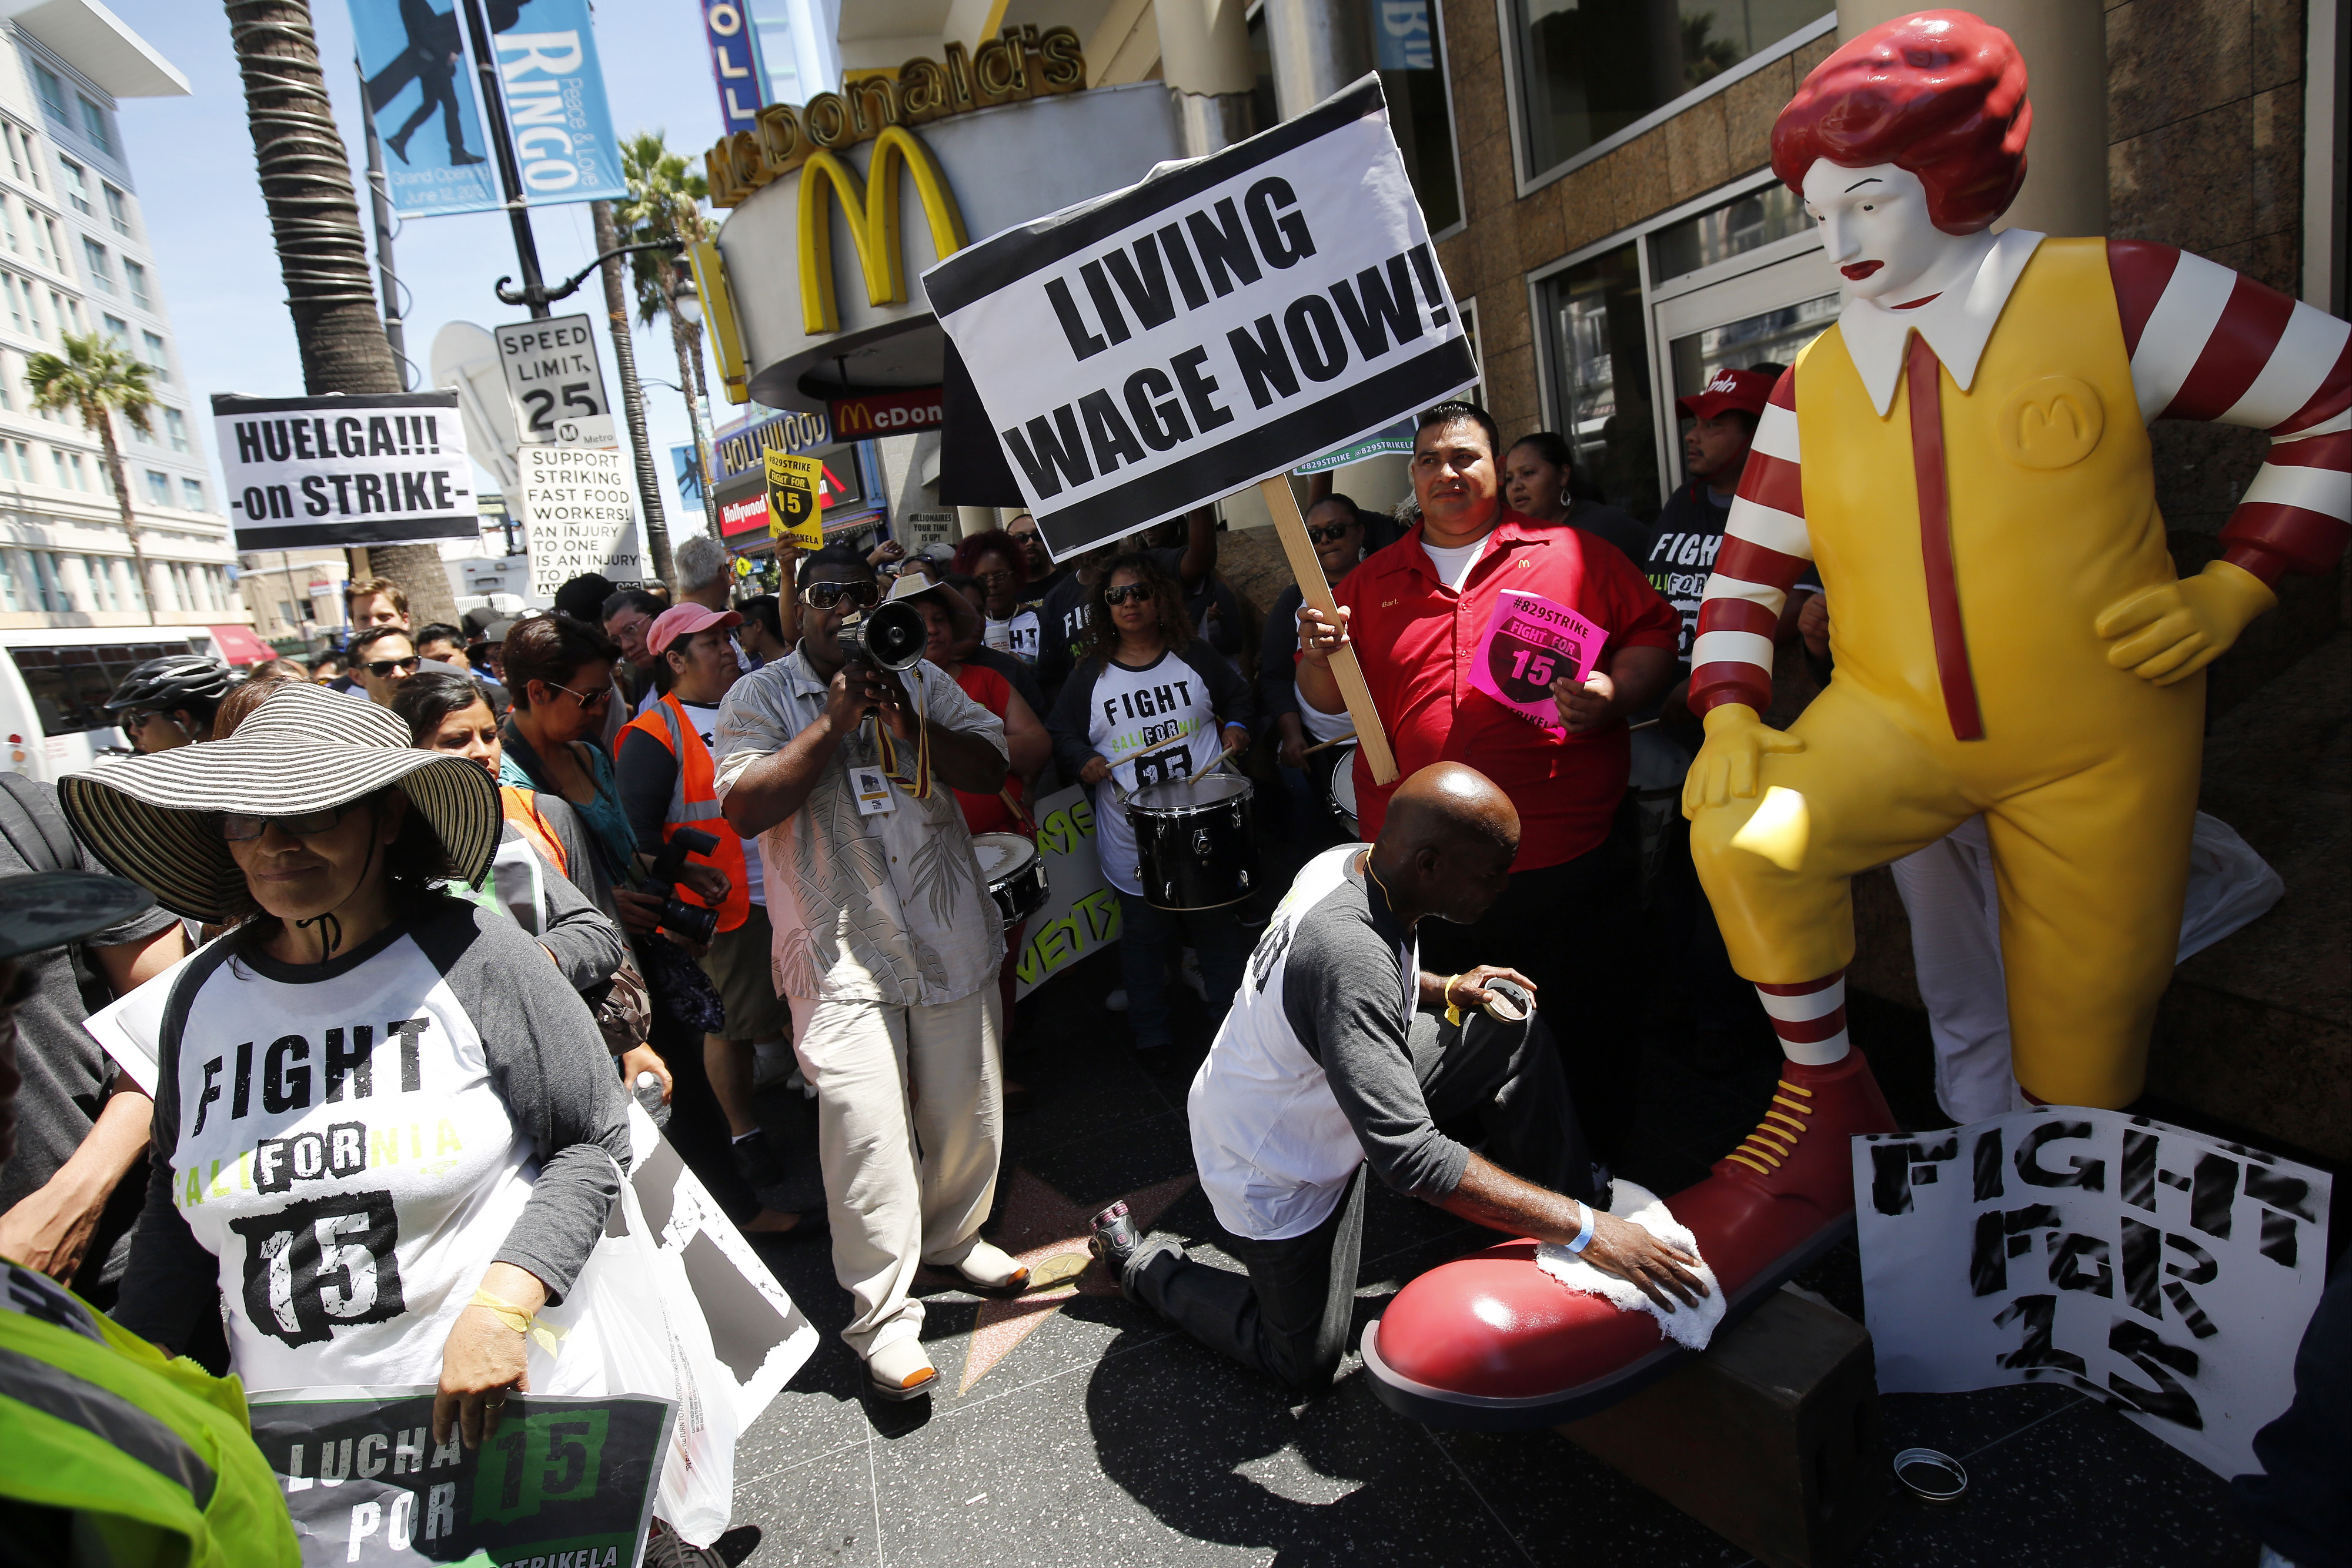 Robert Wideman, a maintenance mechanic at McDonalds Corp., shines the shoes of a Ronald McDonald statue outside of a restaurant while protesting with fast-food workers and supporters organized by the Service Employees International Union (SEIU) in Los Angeles, California, U.S., on Thursday, Aug. 29, 2013.